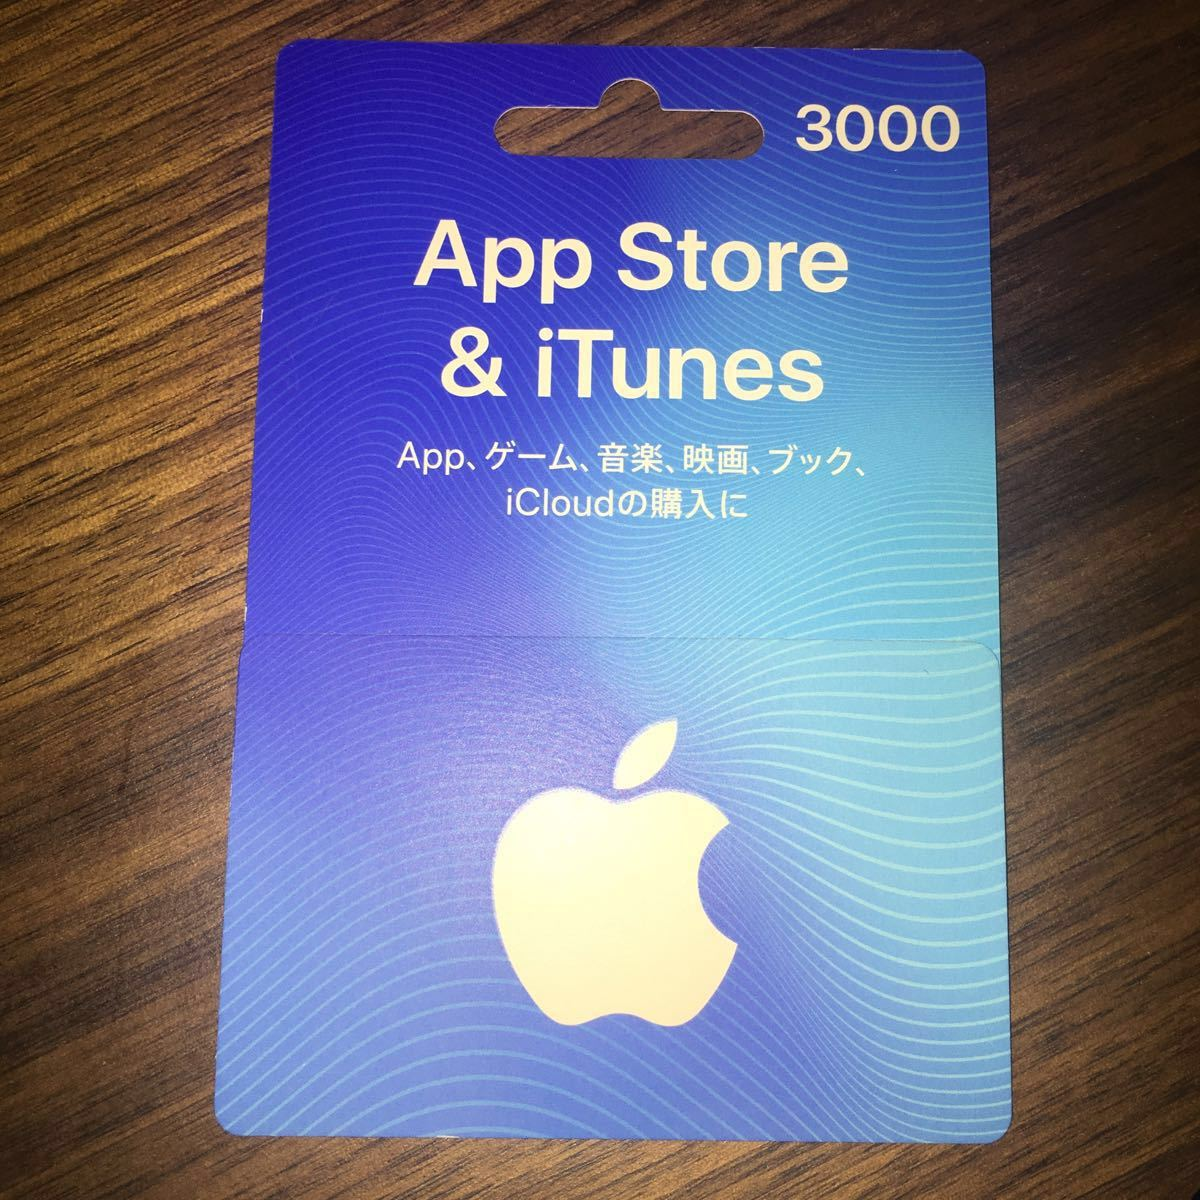 App Store & iTunes gift card 3,000 jpy reality goods sending